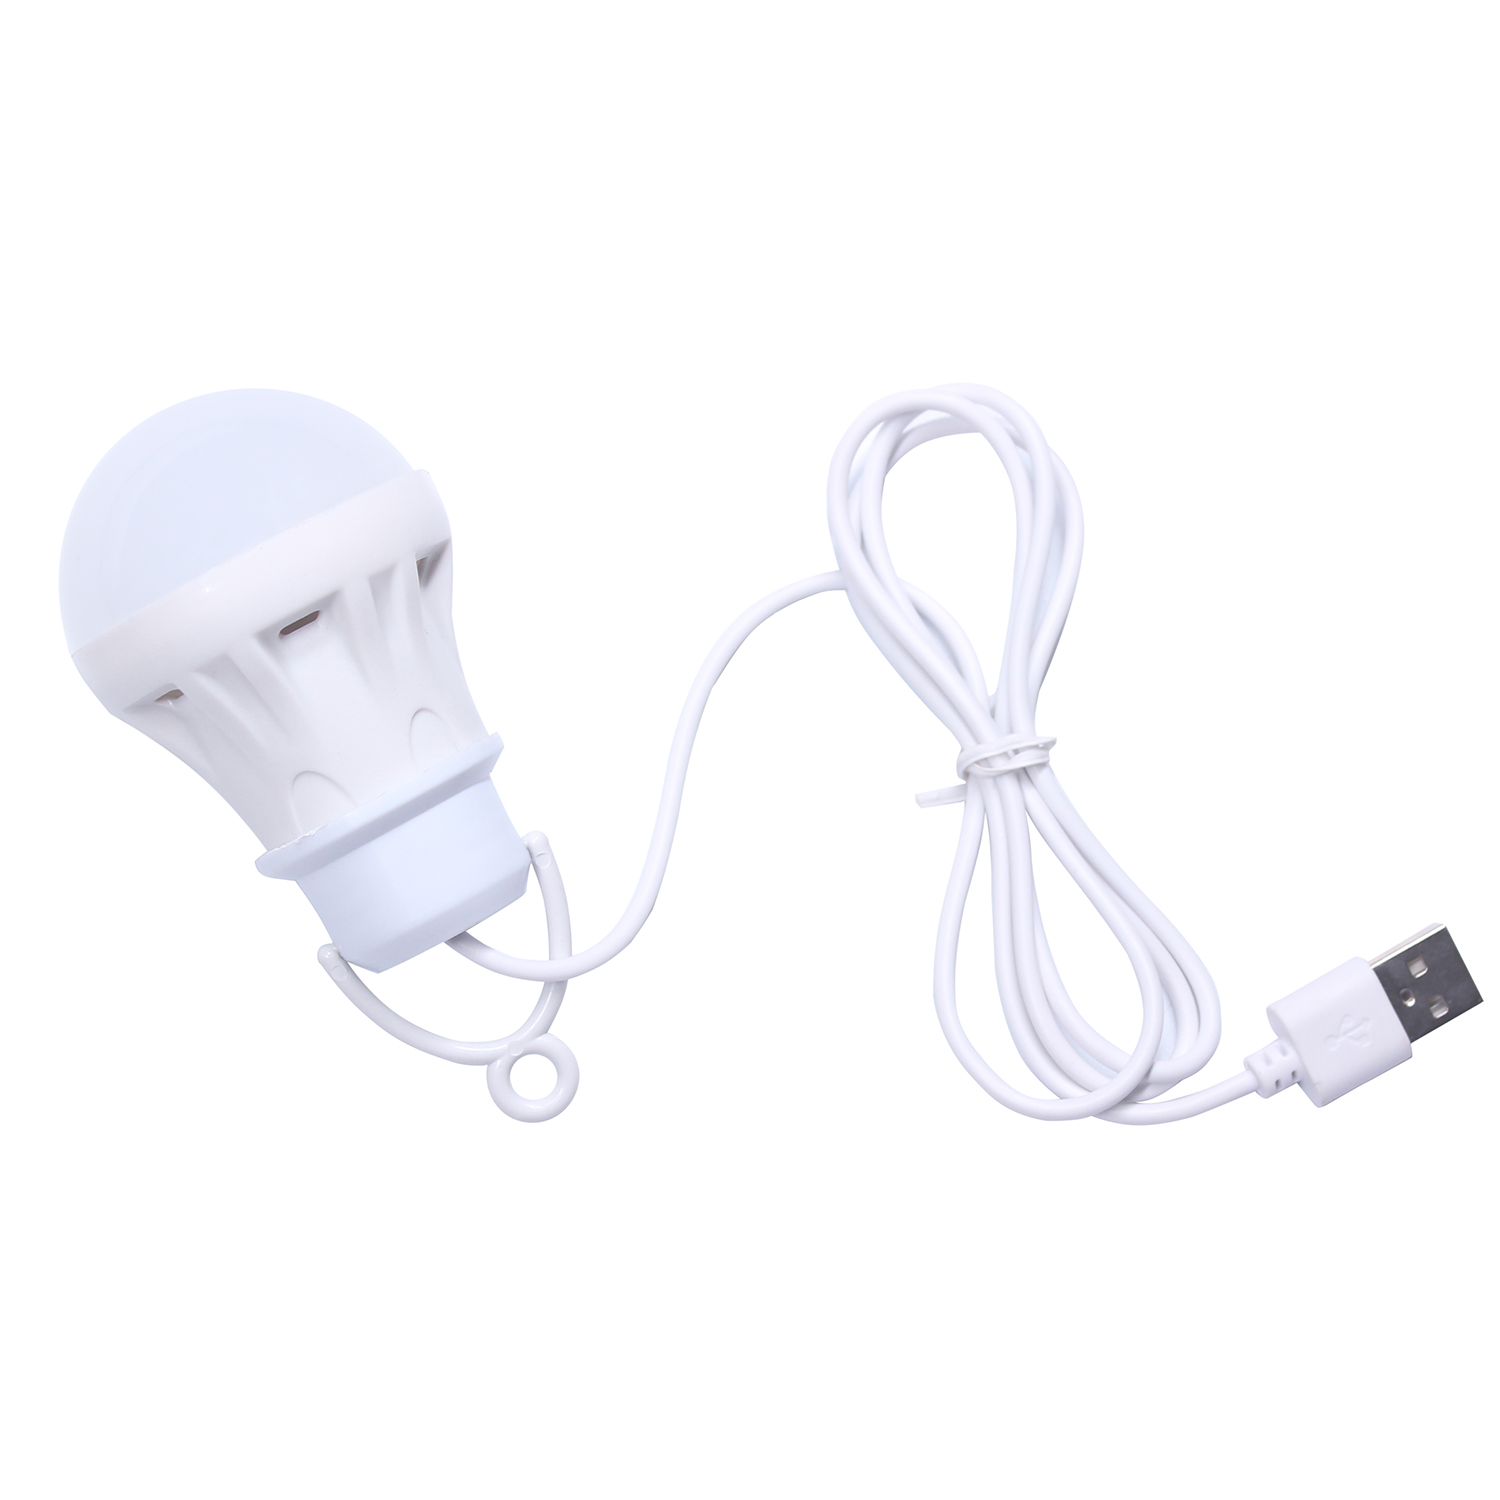 Portable light bulb E27 3V 3W Usb bulb line 5730 mountaineering camping tent travel mobile power notebook tent night fishing ligPortable light bulb E27 3V 3W Usb bulb line 5730 mountaineering camping tent travel mobile power notebook tent night fishing lig